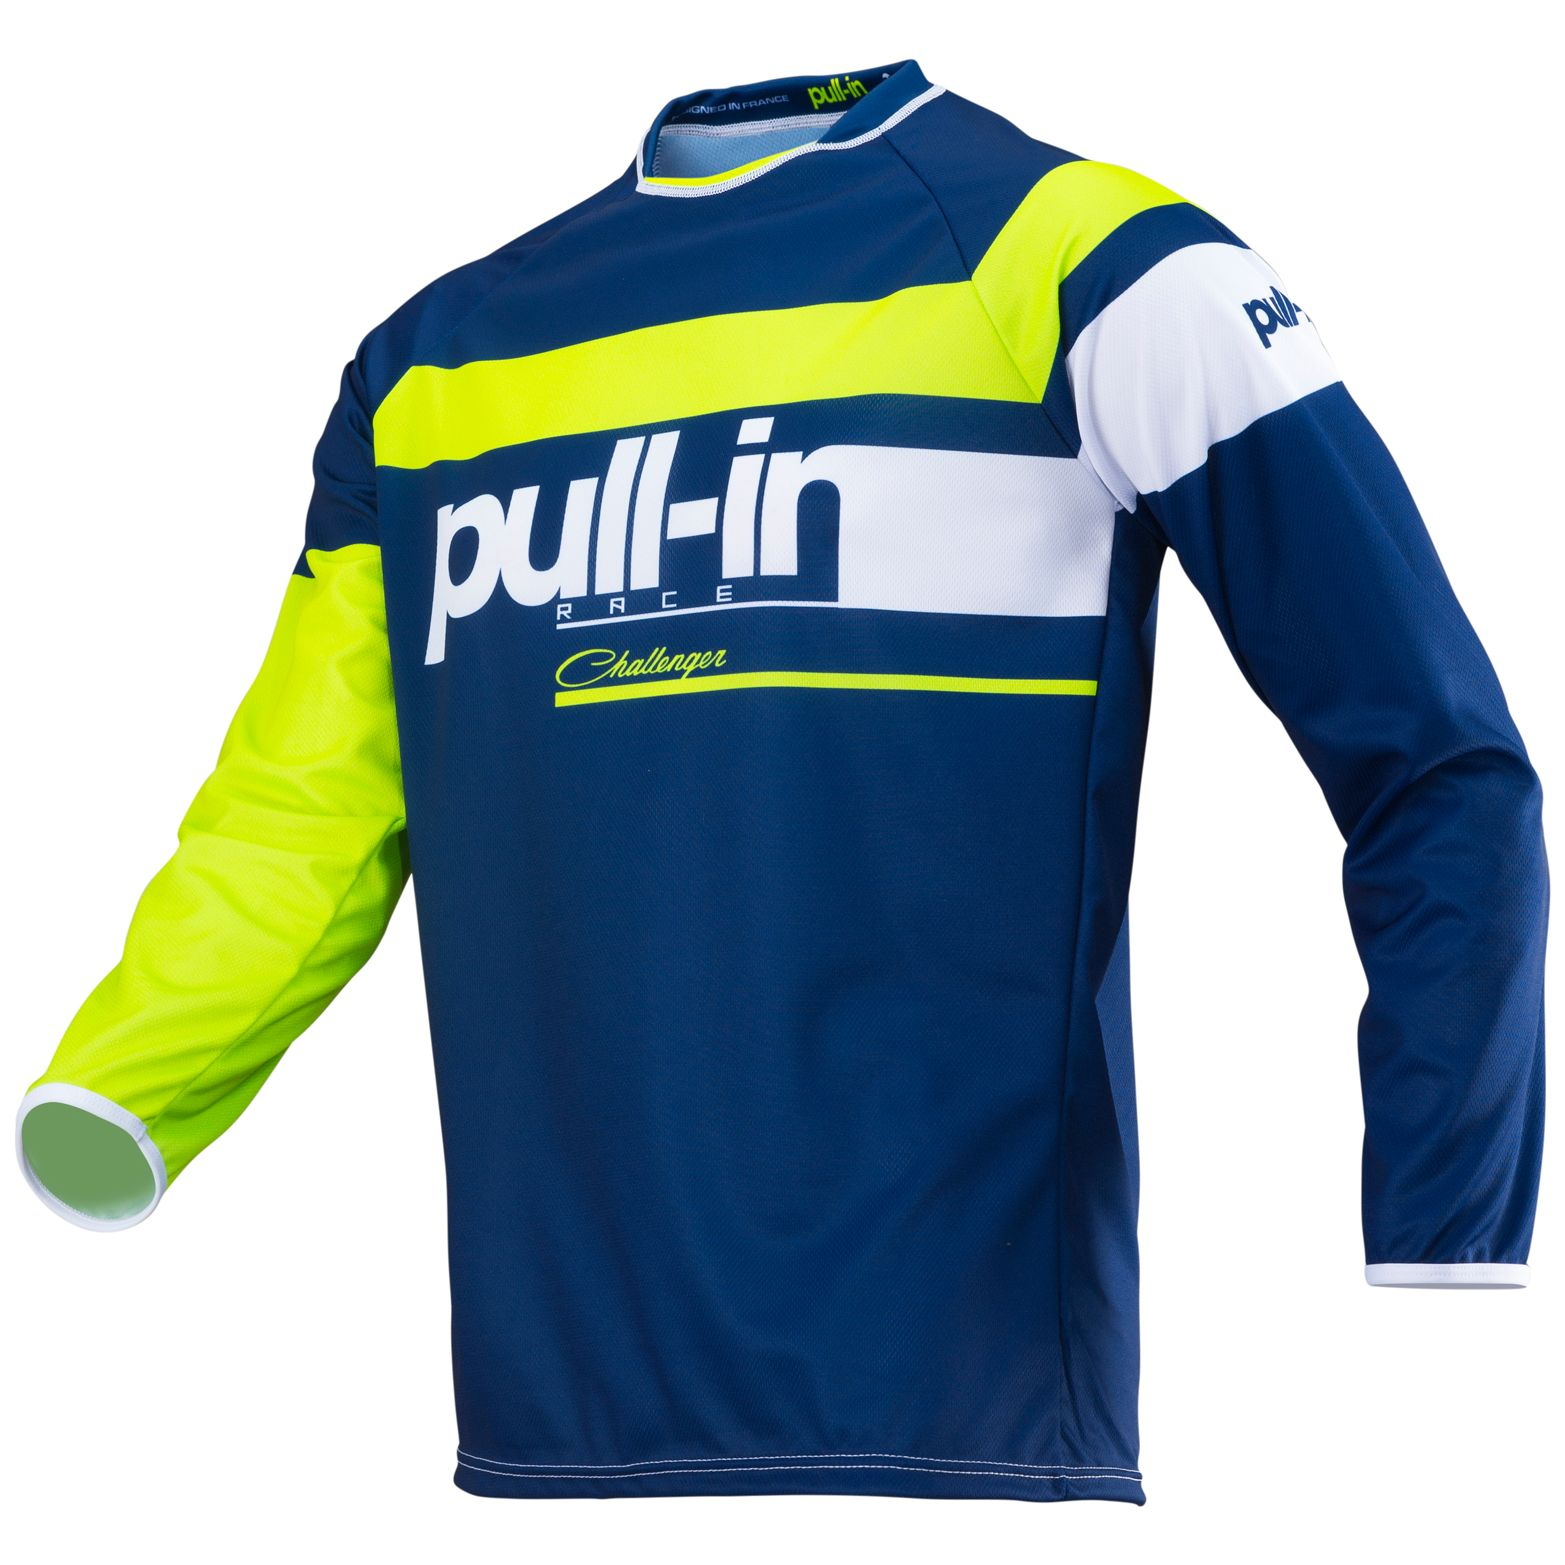 195-9003150-13 Pull-In 2019 Challenger Race Navy Lime Motocross Jersey Enduro Trikot Crosstrui Maillot Offroad